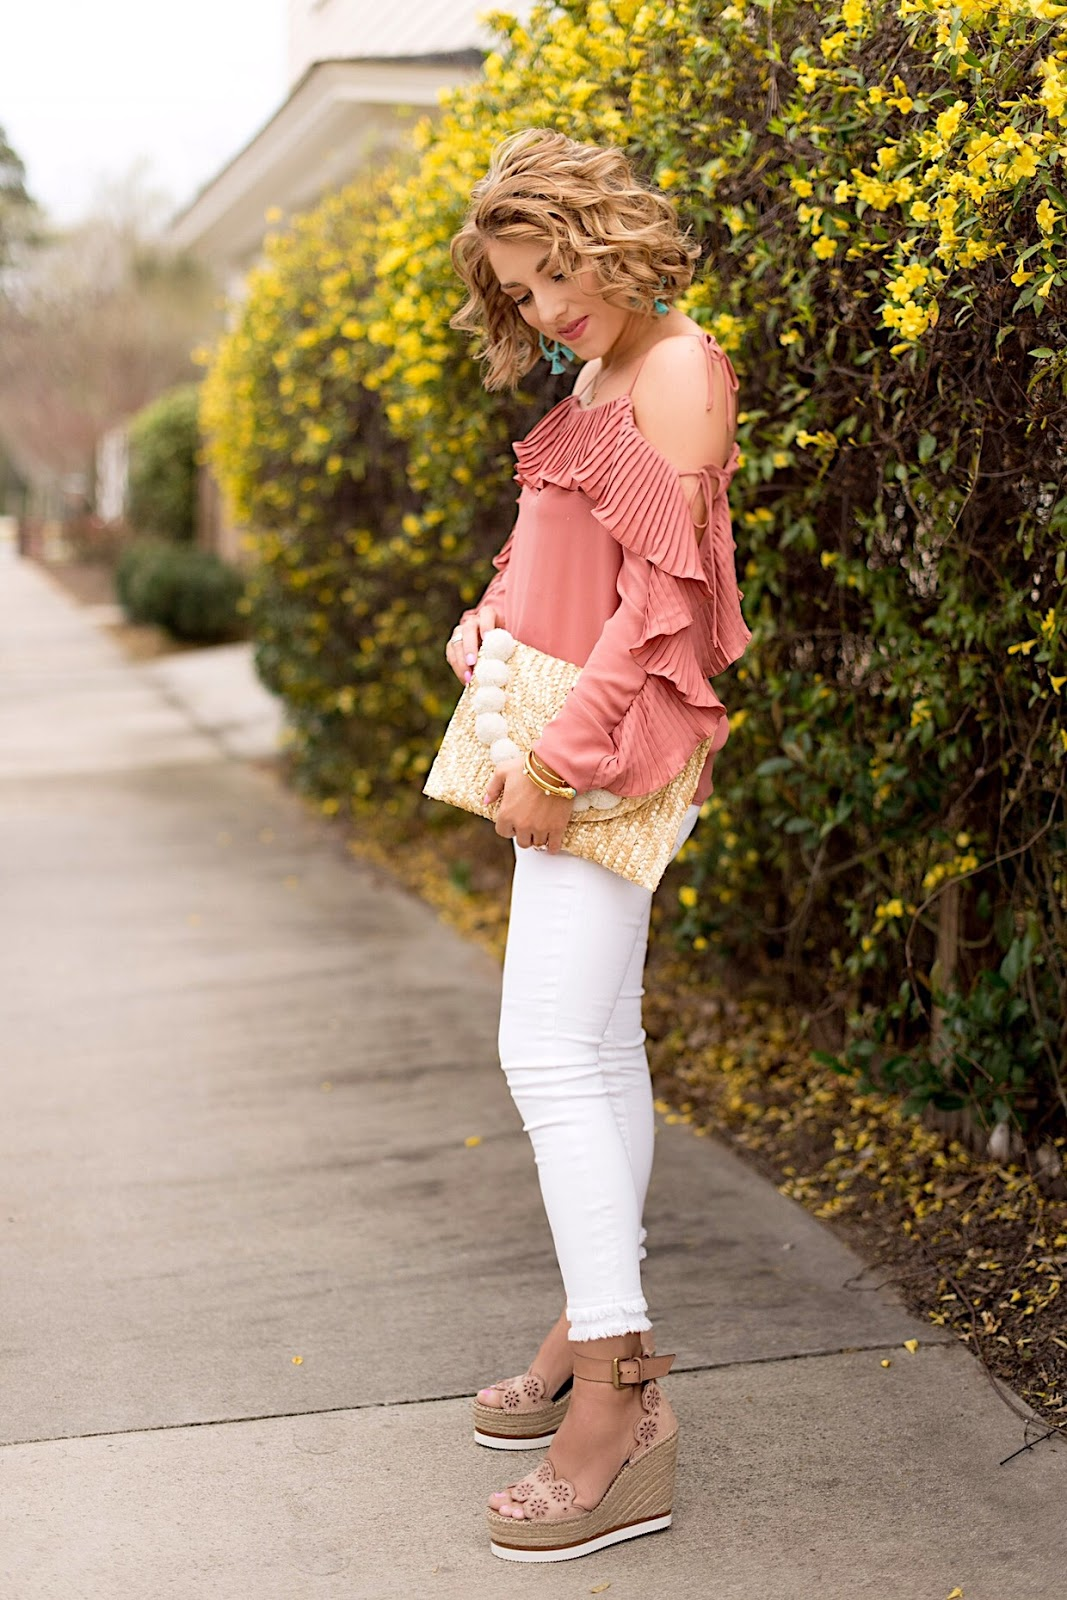 My Favorite White Jeans and Wedges for spring - Click through to see more on Something Delightful Blog